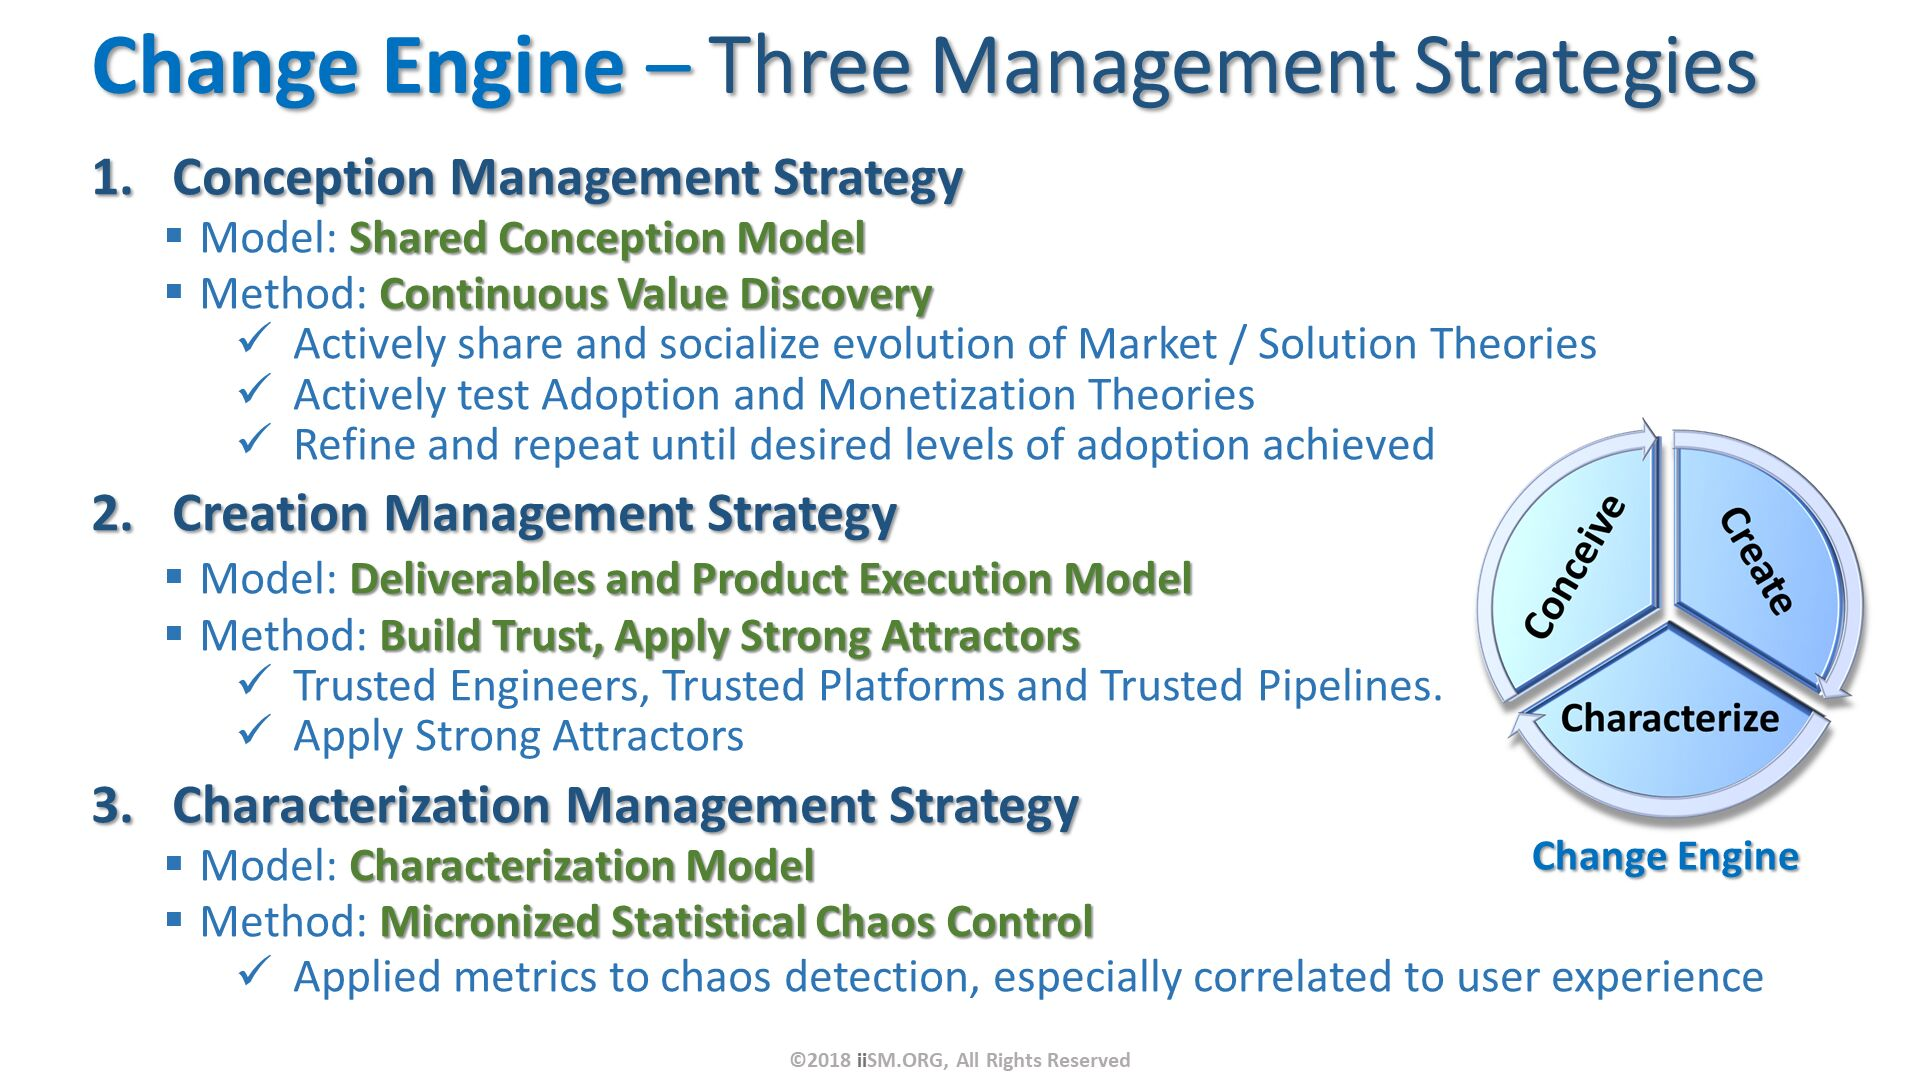 Change Engine – Three Management Strategies. Conception Management Strategy Model: Shared Conception Model Method: Continuous Value Discovery Actively share and socialize evolution of Market / Solution Theories Actively test Adoption and Monetization Theories Refine and repeat until desired levels of adoption achieved Creation Management Strategy Model: Deliverables and Product Execution Model Method: Build Trust, Apply Strong Attractors Trusted Engineers, Trusted Platforms and Trusted Pipelines. Apply Strong Attractors Characterization Management Strategy Model: Characterization Model Method: Micronized Statistical Chaos Control Applied metrics to chaos detection, especially correlated to user experience. ©2018 iiSM.ORG, All Rights Reserved.